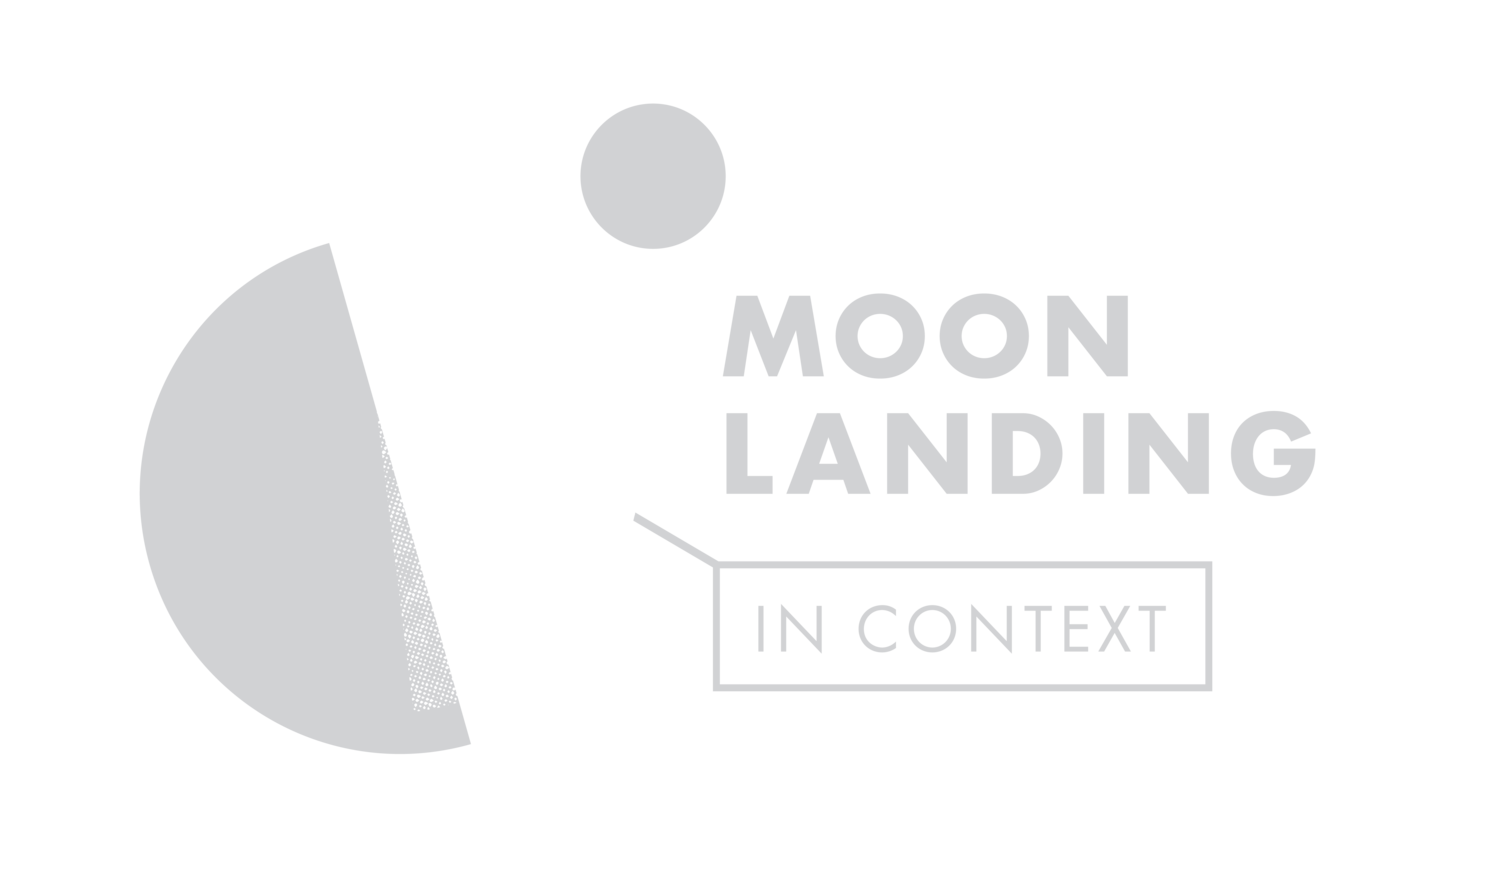 Moon Landing in Context